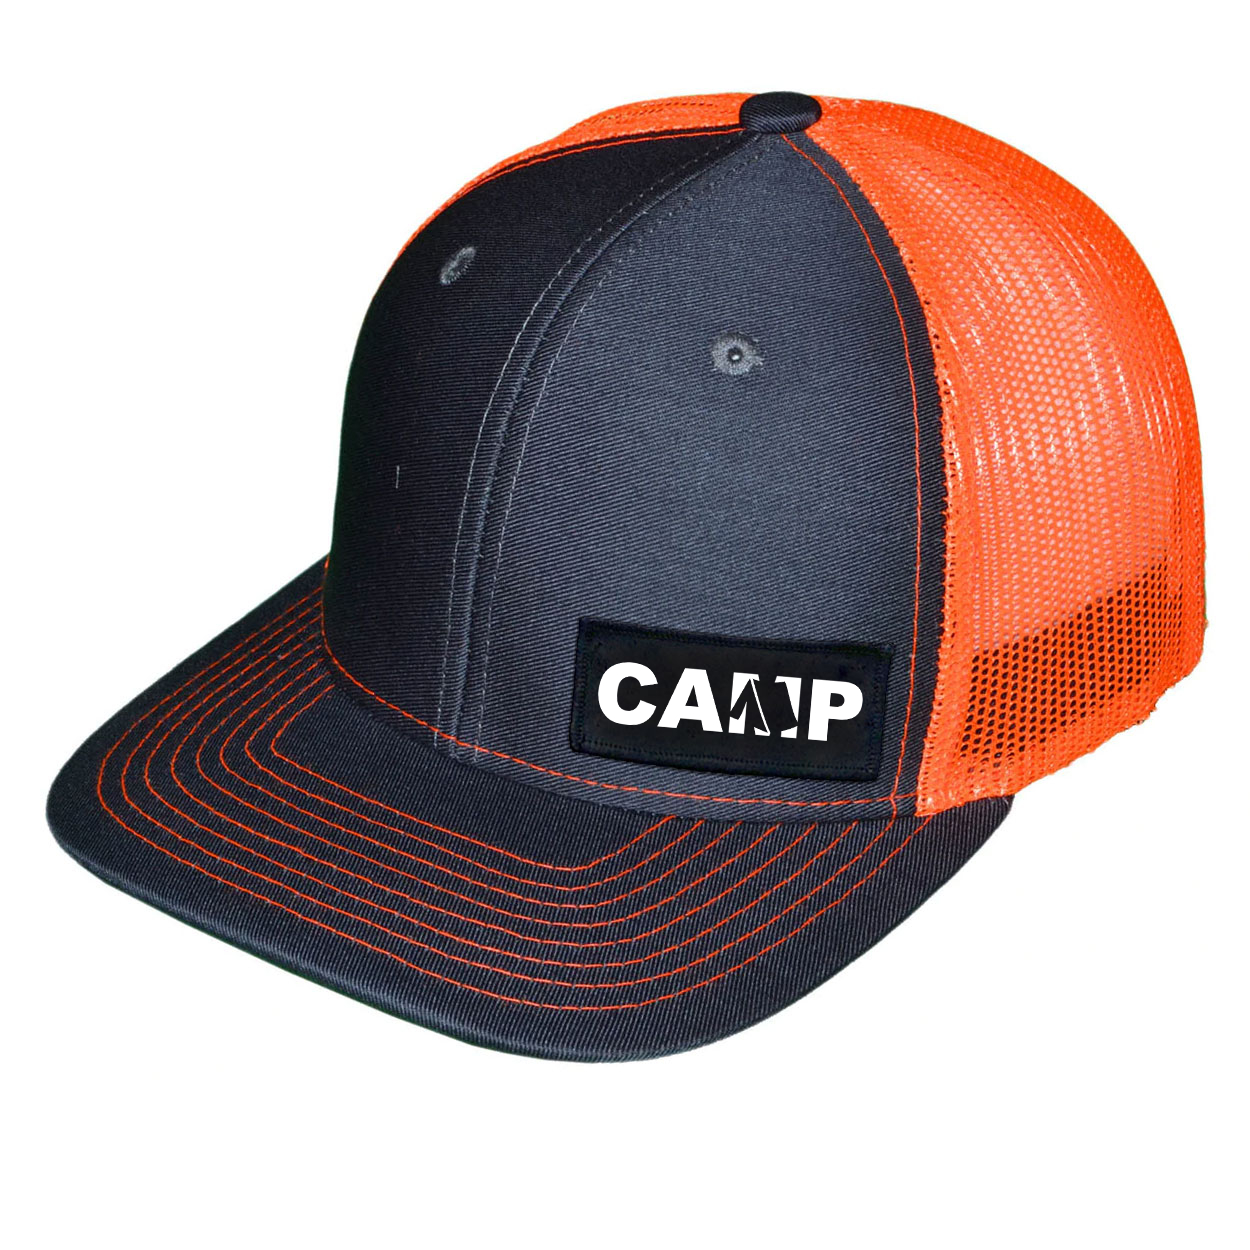 Camp Tent Logo Night Out Woven Patch Snapback Trucker Hat Dark Gray/Orange (White Logo)